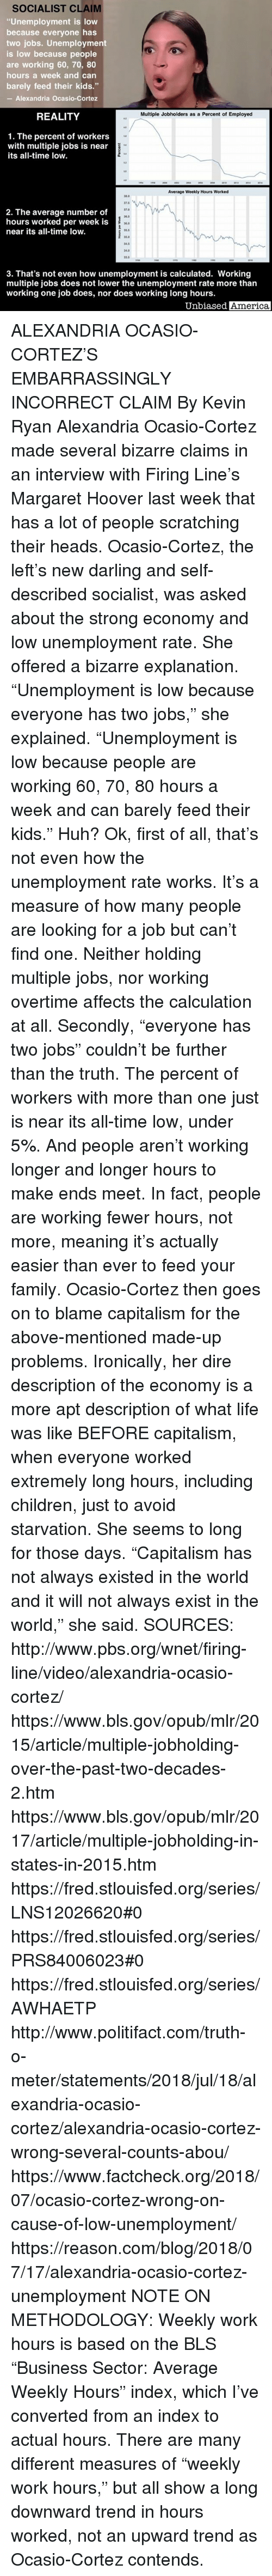 "America, Children, and Family: SOCIALIST CLAIM  ""Unemployment is low  because everyone has  two jobs. Unemployment  is low because people  are working 60, 70, 80  hours a week and can  barely feed their kids.""  -Alexandria Ocasio-Cortez  REALITY  Multiple Jobholders as a Percent of Employed  1. The percent of workers  with multiple jobs is near  its all-time low.  Average Weekly Hours Worked  7.5  37,0  36.5  2. The average number of  hours worked per week is  near its all-time low.  35.5  35.0  45  34.0  3. That's not even how unemployment is calculated. Working  multiple jobs does not lower the unemployment rate more than  working one job does, nor does working long hours.  Unbiased  America ALEXANDRIA OCASIO-CORTEZ'S EMBARRASSINGLY INCORRECT CLAIM By Kevin Ryan  Alexandria Ocasio-Cortez made several bizarre claims in an interview with Firing Line's Margaret Hoover last week that has a lot of people scratching their heads.  Ocasio-Cortez, the left's new darling and self-described socialist, was asked about the strong economy and low unemployment rate.  She offered a bizarre explanation.  ""Unemployment is low because everyone has two jobs,"" she explained.  ""Unemployment is low because people are working 60, 70, 80 hours a week and can barely feed their kids.""  Huh?  Ok, first of all, that's not even how the unemployment rate works.  It's a measure of how many people are looking for a job but can't find one.  Neither holding multiple jobs, nor working overtime affects the calculation at all.  Secondly, ""everyone has two jobs"" couldn't be further than the truth.  The percent of workers with more than one just is near its all-time low, under 5%.  And people aren't working longer and longer hours to make ends meet.  In fact, people are working fewer hours, not more, meaning it's actually easier than ever to feed your family.  Ocasio-Cortez then goes on to blame capitalism for the above-mentioned made-up problems.  Ironically, her dire description of the economy is a more apt description of what life was like BEFORE capitalism, when everyone worked extremely long hours, including children, just to avoid starvation.  She seems to long for those days.  ""Capitalism has not always existed in the world and it will not always exist in the world,"" she said.  SOURCES: http://www.pbs.org/wnet/firing-line/video/alexandria-ocasio-cortez/ https://www.bls.gov/opub/mlr/2015/article/multiple-jobholding-over-the-past-two-decades-2.htm https://www.bls.gov/opub/mlr/2017/article/multiple-jobholding-in-states-in-2015.htm https://fred.stlouisfed.org/series/LNS12026620#0 https://fred.stlouisfed.org/series/PRS84006023#0 https://fred.stlouisfed.org/series/AWHAETP http://www.politifact.com/truth-o-meter/statements/2018/jul/18/alexandria-ocasio-cortez/alexandria-ocasio-cortez-wrong-several-counts-abou/ https://www.factcheck.org/2018/07/ocasio-cortez-wrong-on-cause-of-low-unemployment/ https://reason.com/blog/2018/07/17/alexandria-ocasio-cortez-unemployment NOTE ON METHODOLOGY: Weekly work hours is based on the BLS ""Business Sector: Average Weekly Hours"" index, which I've converted from an index to actual hours.  There are many different measures of ""weekly work hours,"" but all show a long downward trend in hours worked, not an upward trend as Ocasio-Cortez contends."